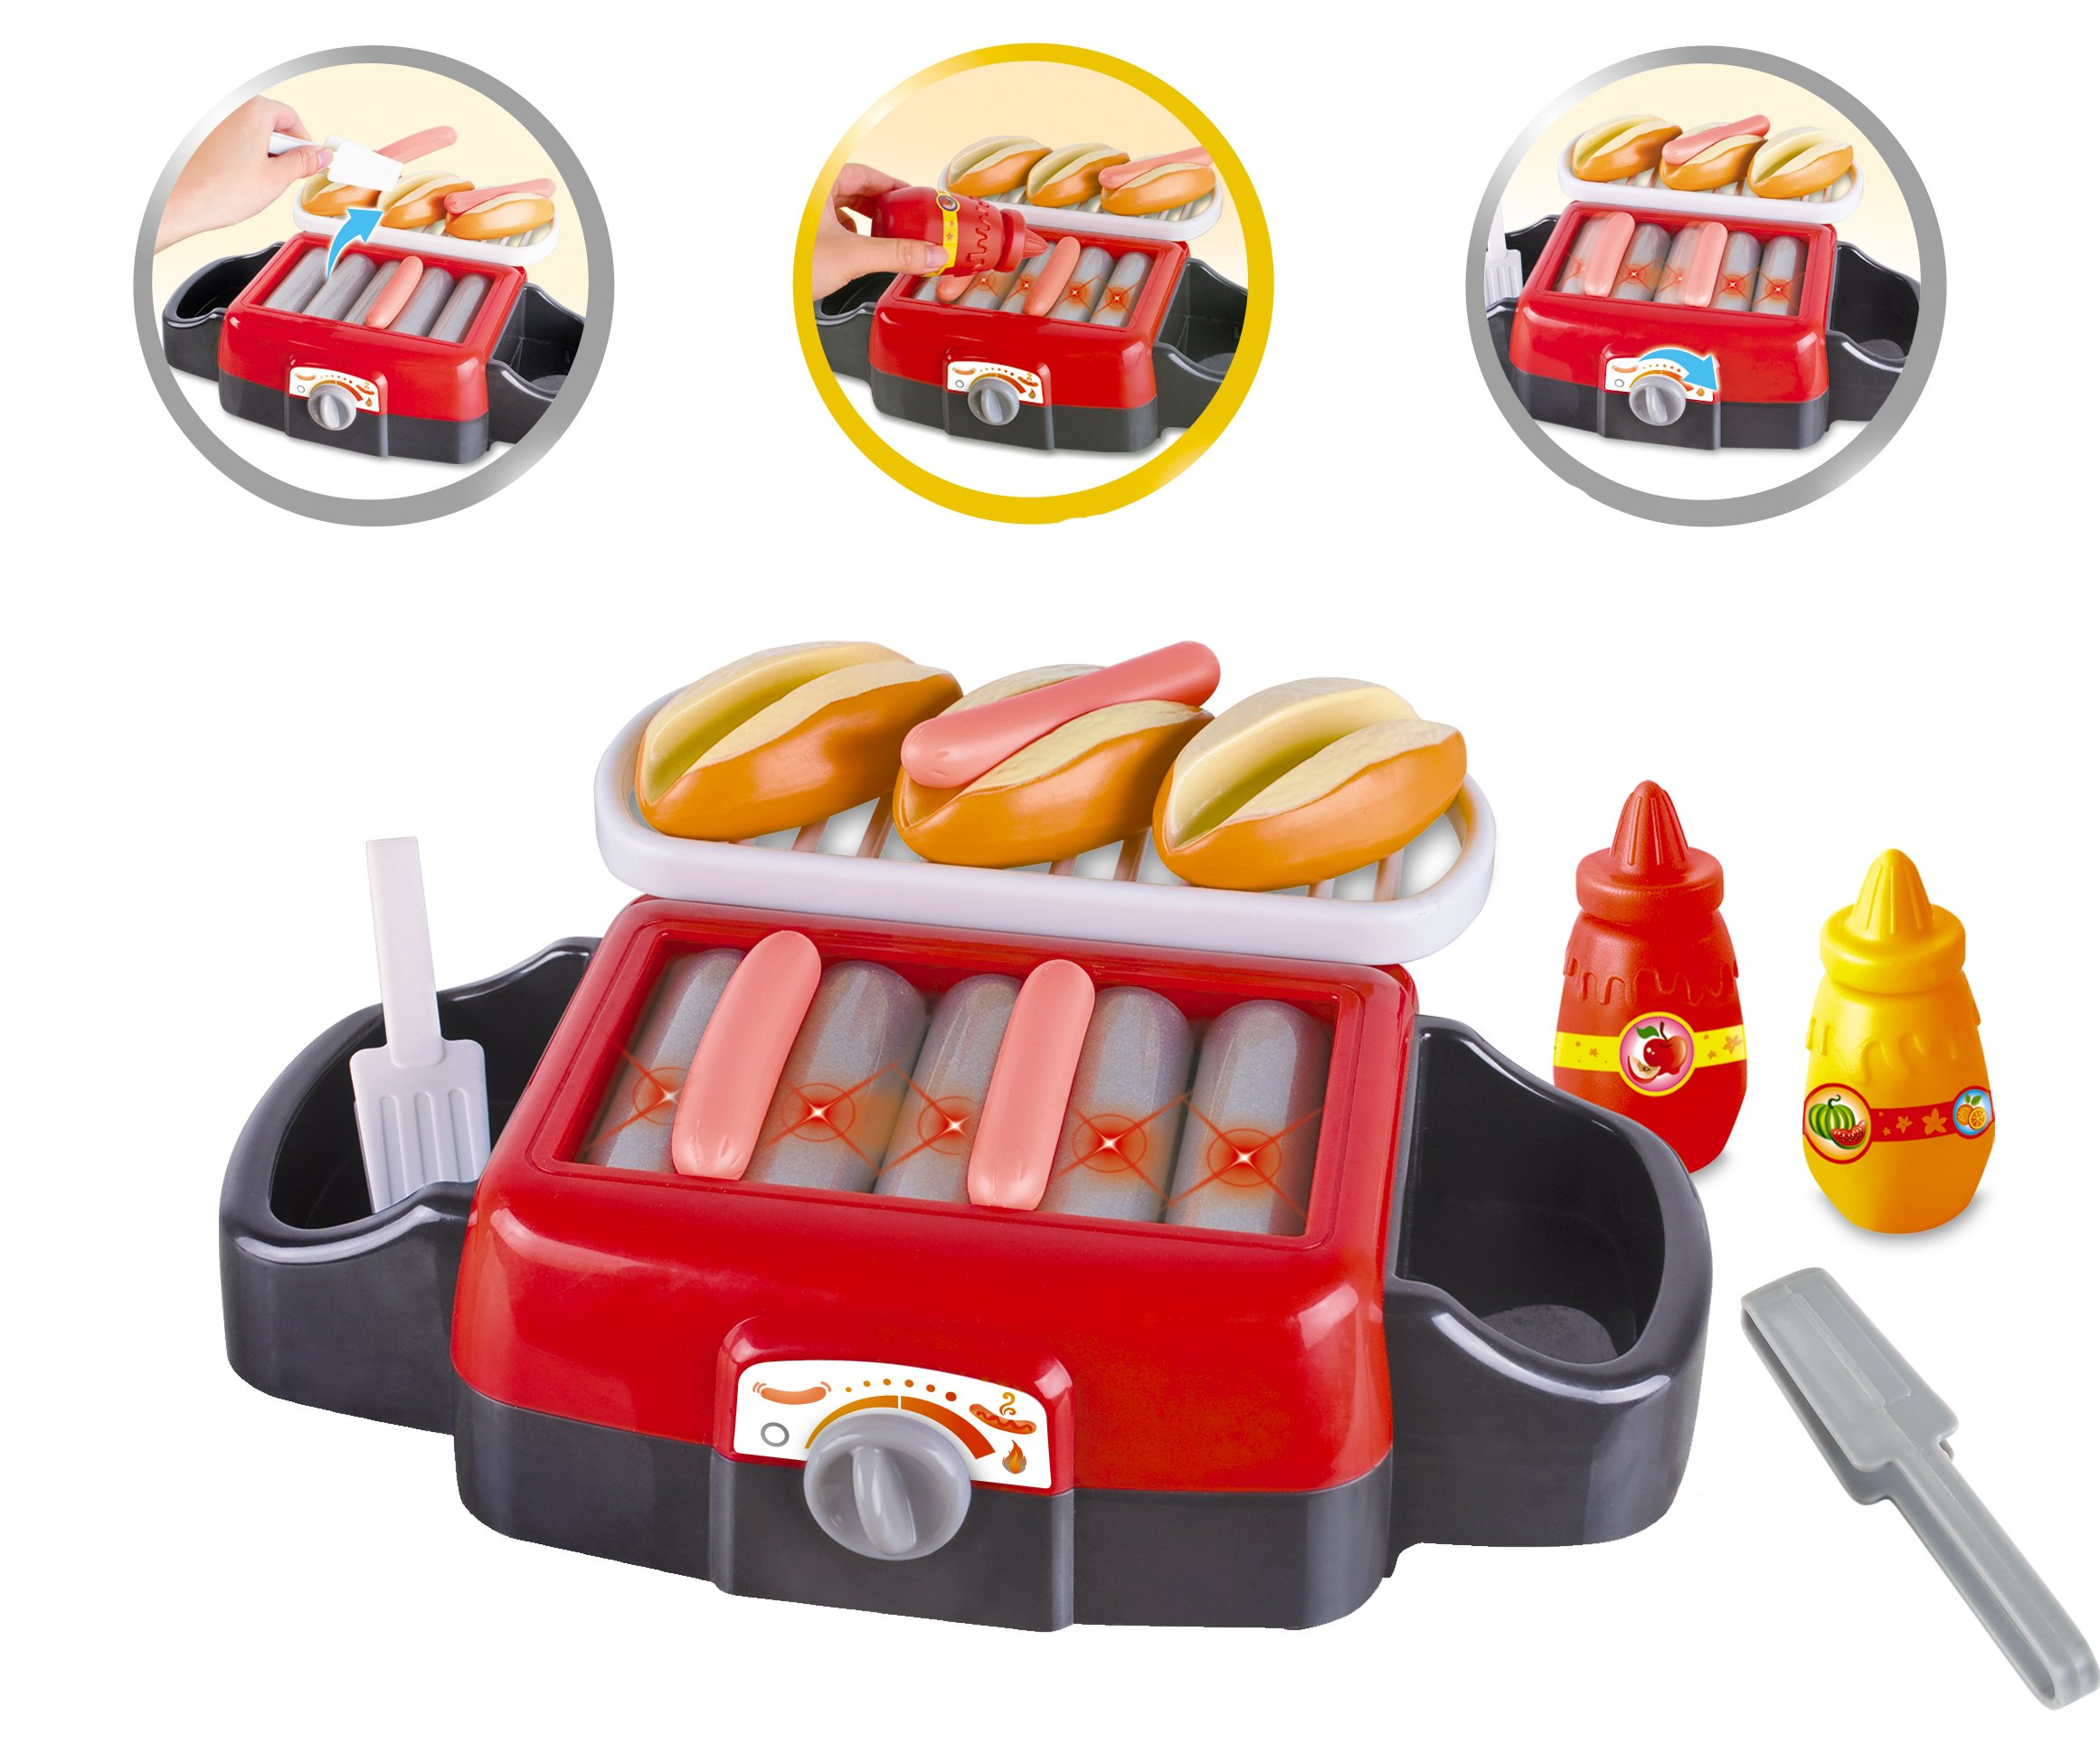 Liberty Imports Hot Dog Roller Grill Electric Stove Play Food Kitchen Appliance Set for Kids